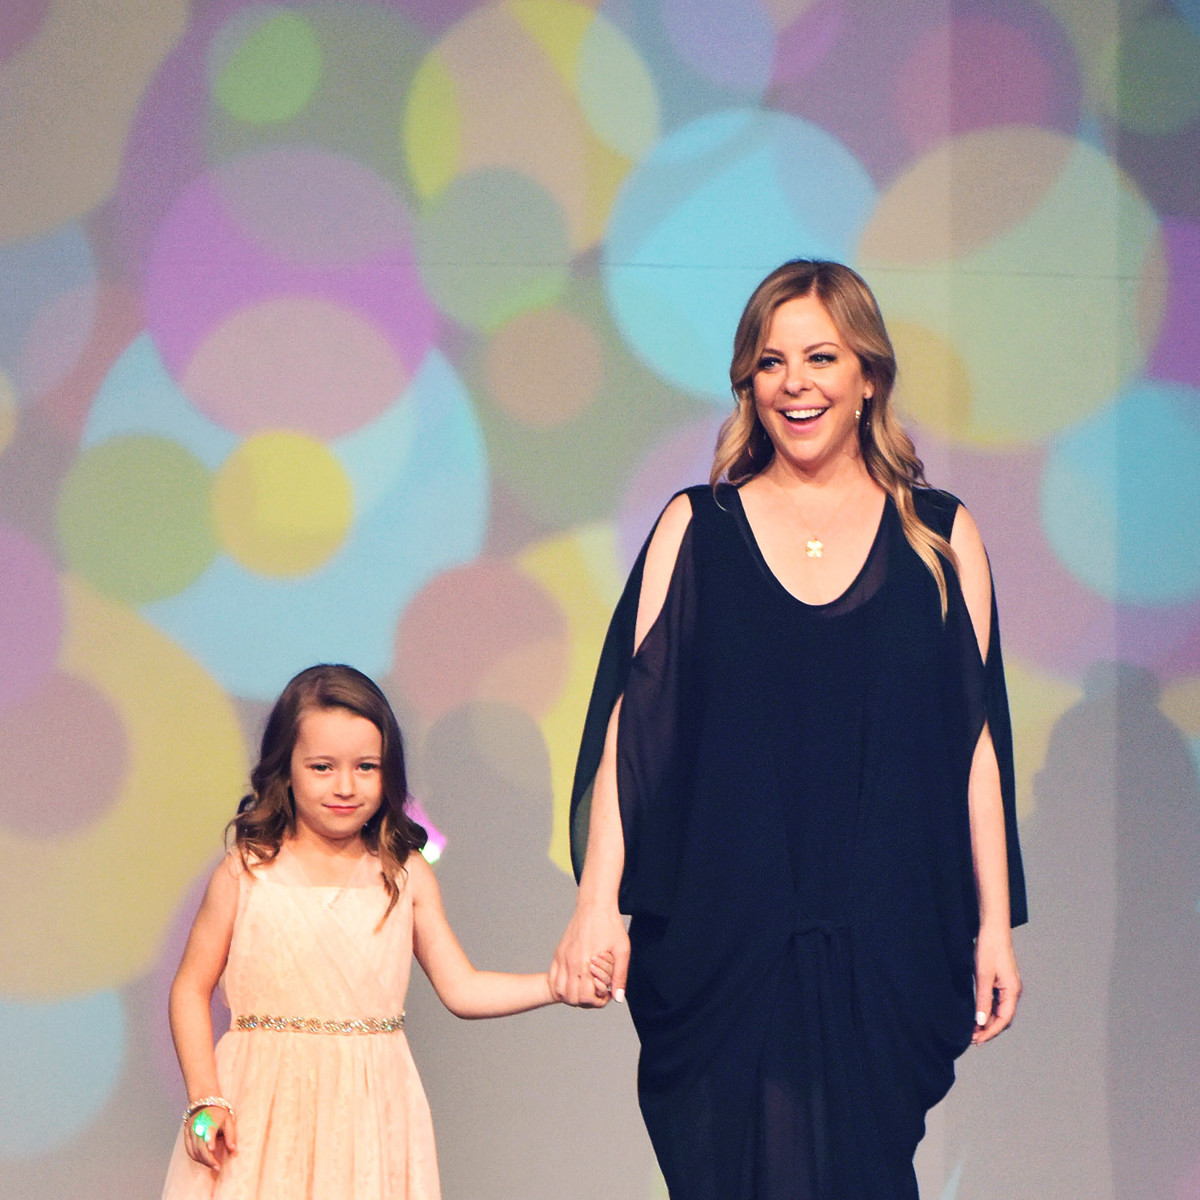 Dallas_Children's Gala